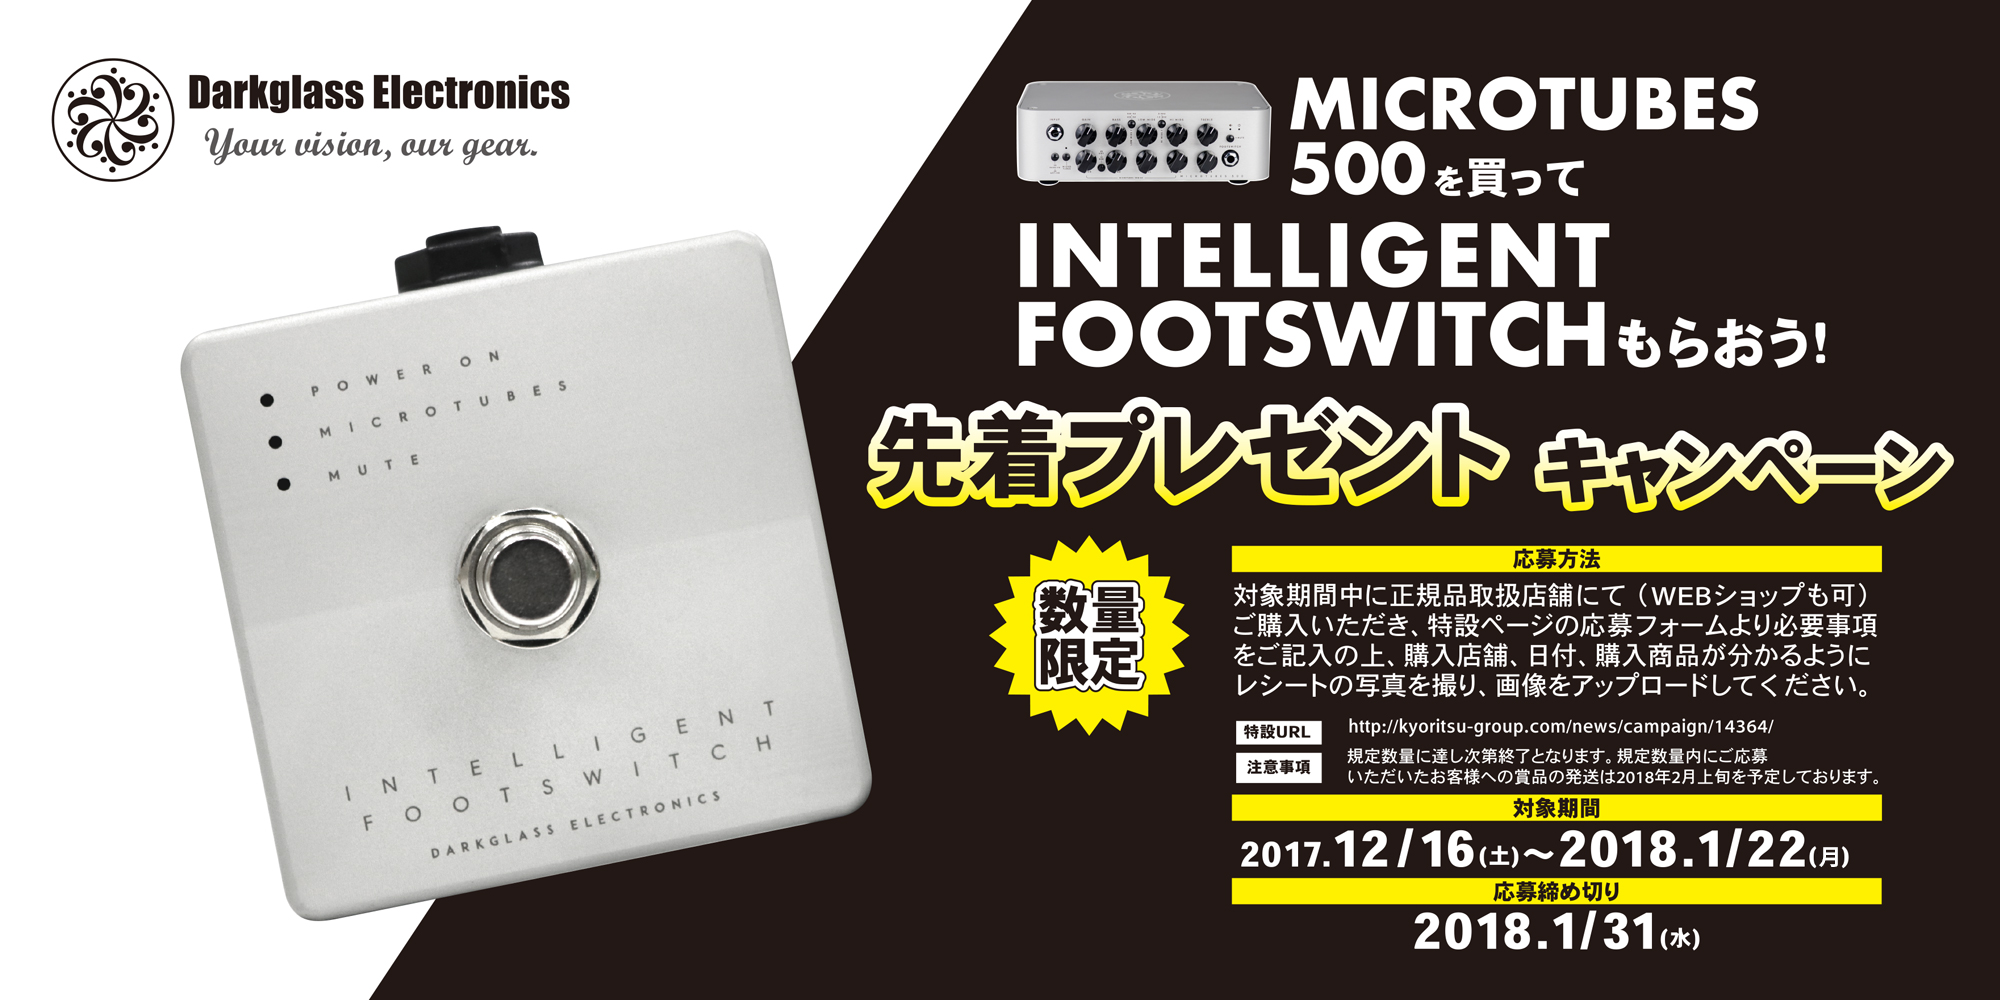 INTELLIGENT FOOTSWITCH 先着プレゼント キャンペーン